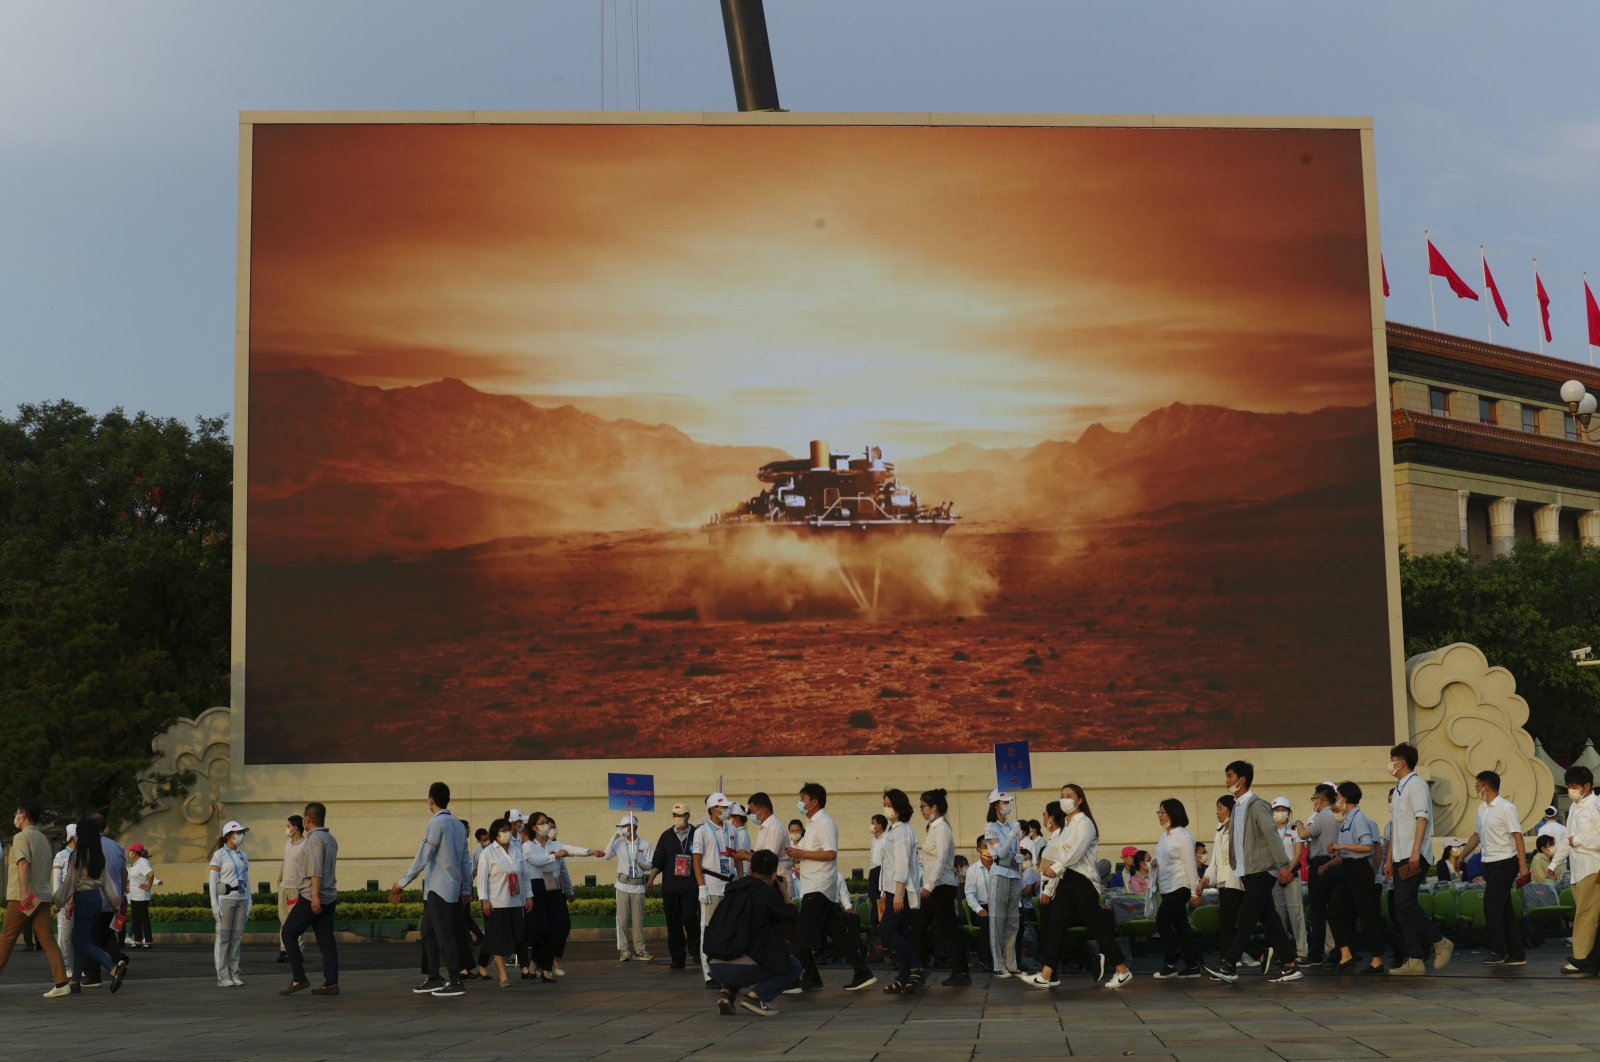 Attendees at a ceremony to mark the 100th anniversary of the founding of the ruling Chinese Communist Party pass by a screen depicting China's Mars spacecraft with its rover landing, in Beijing, China, July 1, 2021. (AP Photo)